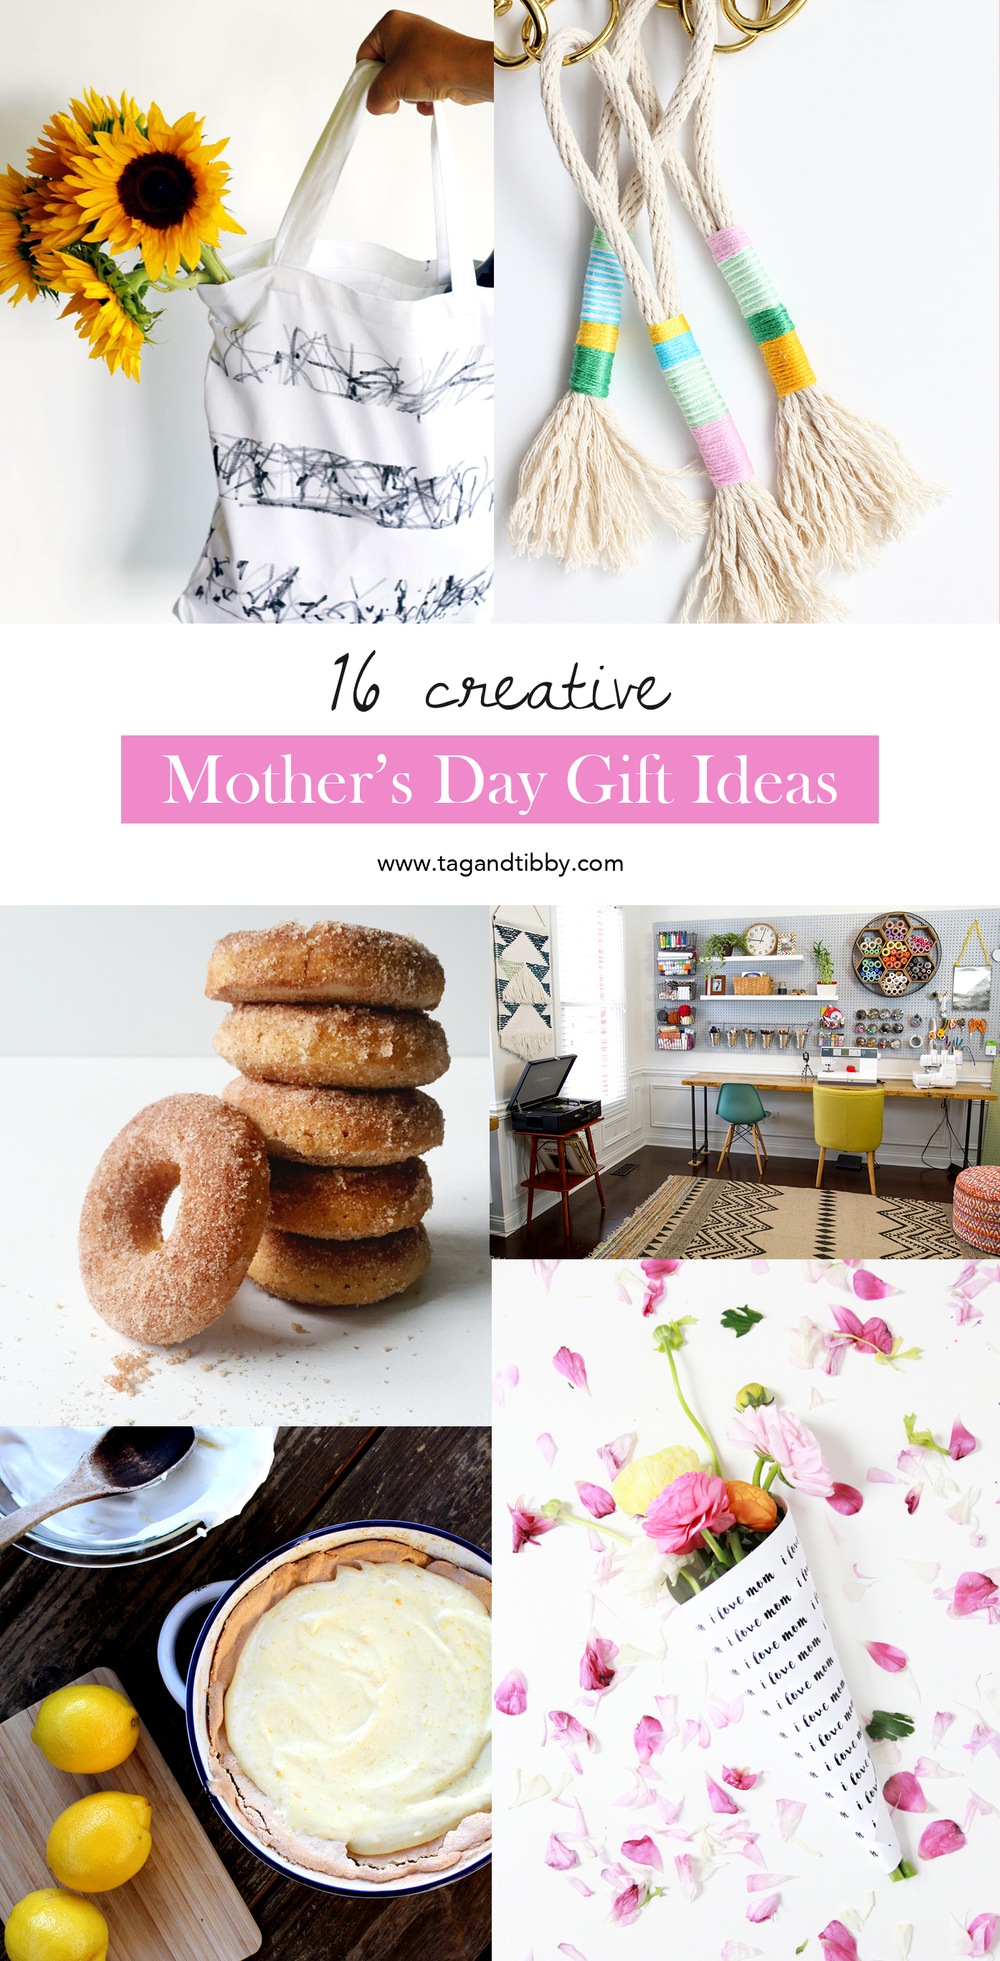 16 unique, handmade Mother's Day gift ideas from recipes to kids crafts